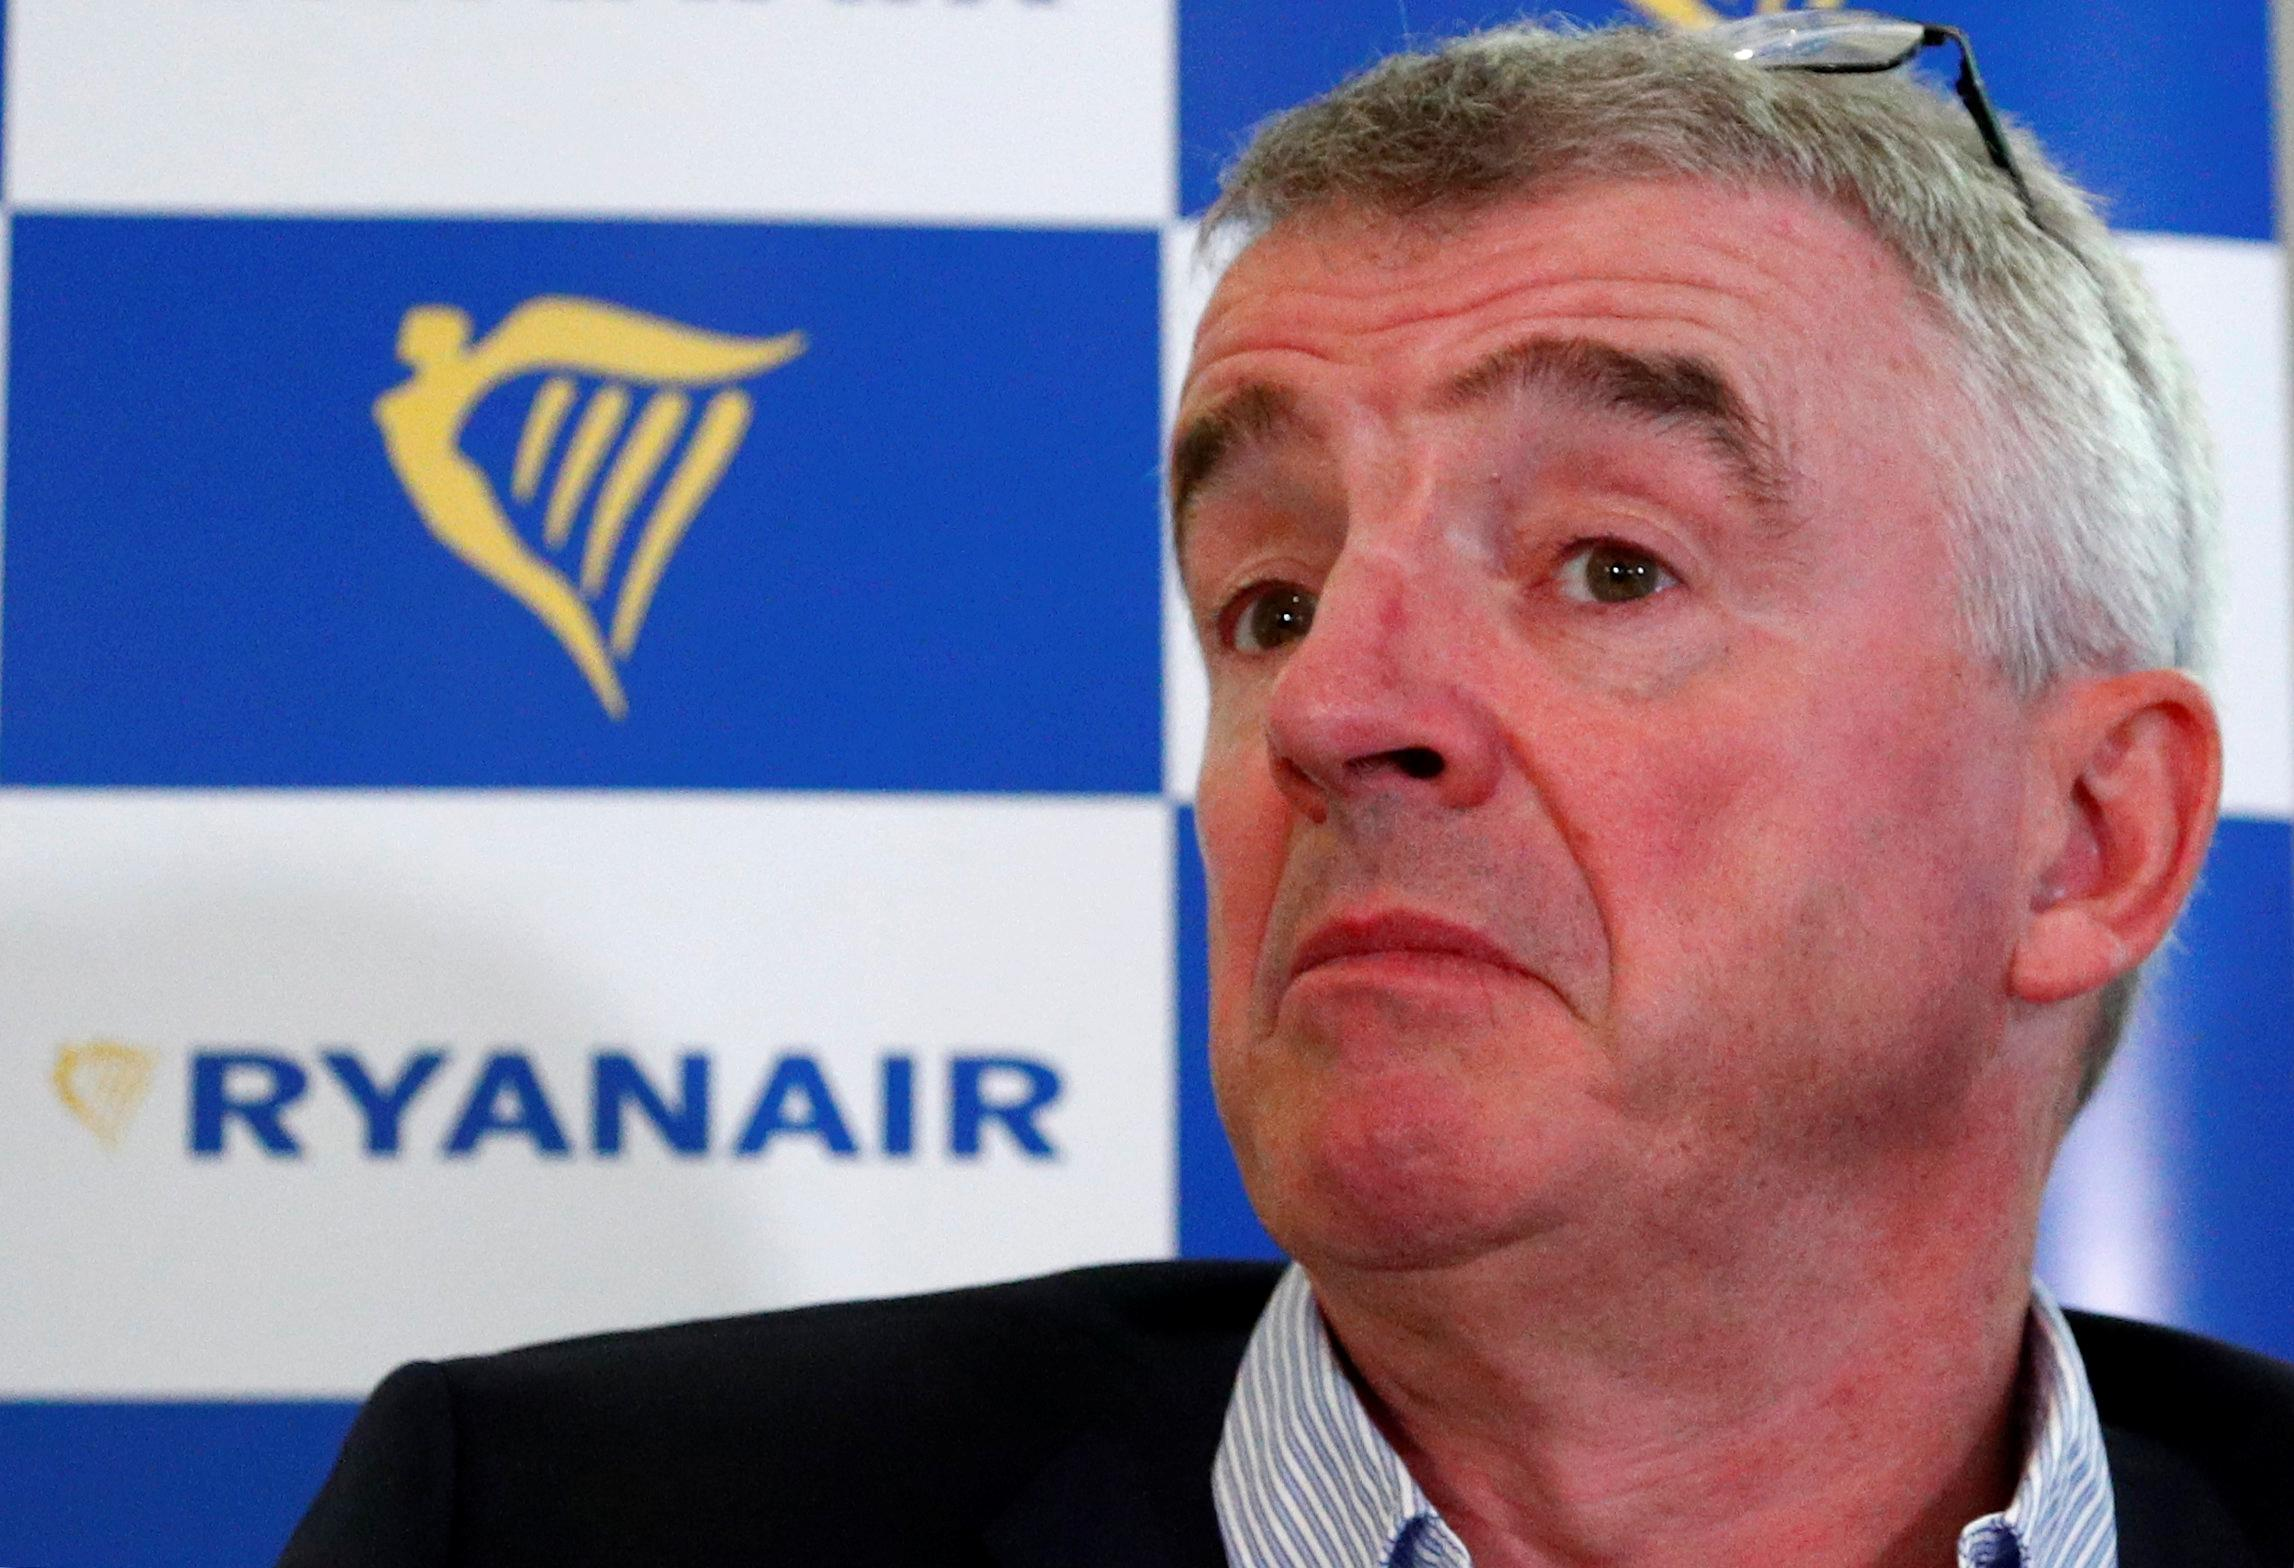 Airline bosses, asked to trade places, reveal tensions of the industry